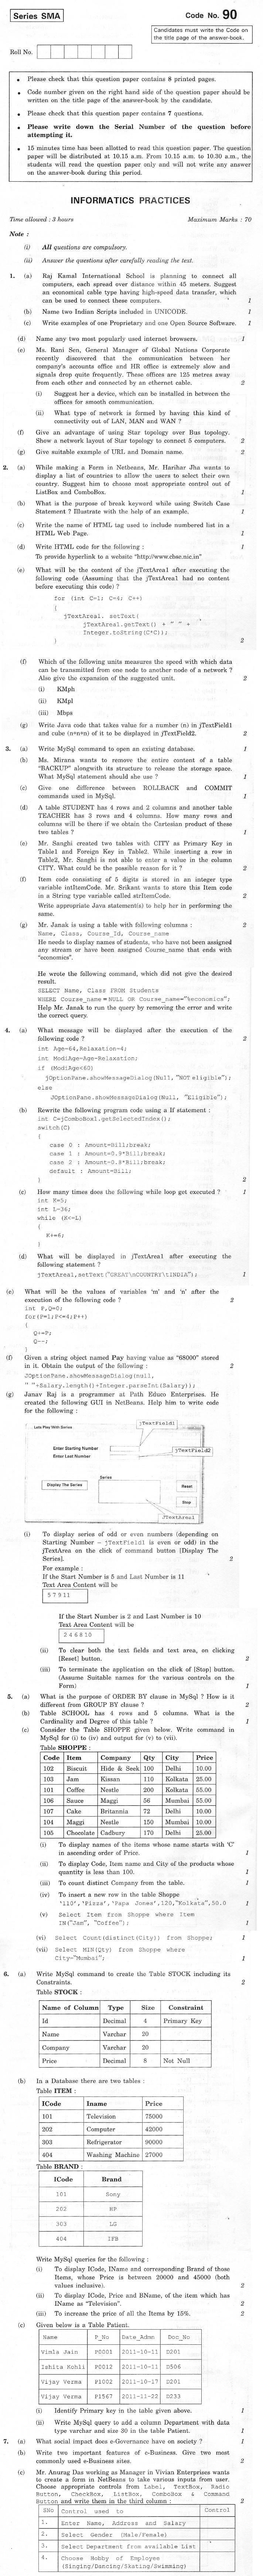 CBSE Class XII Previous Year Question Paper 2012 Information Practices